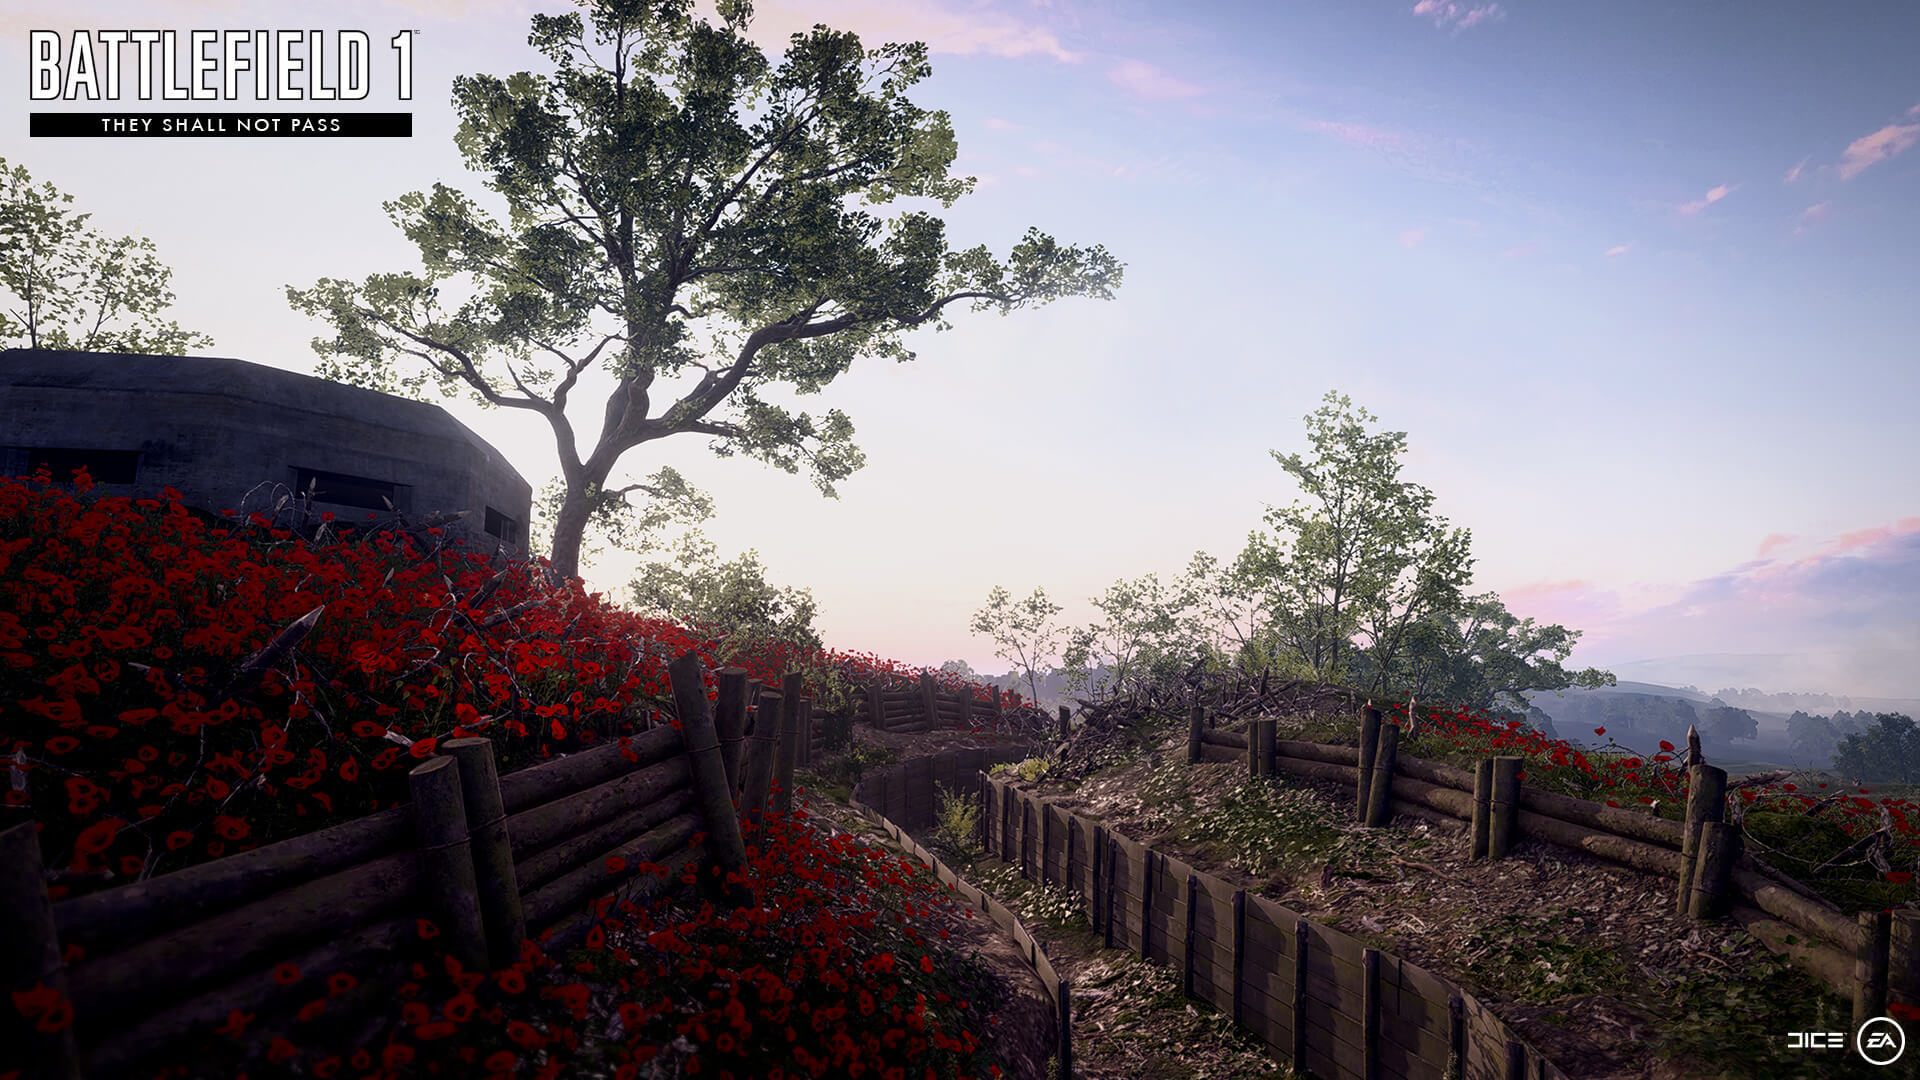 Preview Battlefield 1's March Expansion With Stunning New Images, New Game Mode Detailed